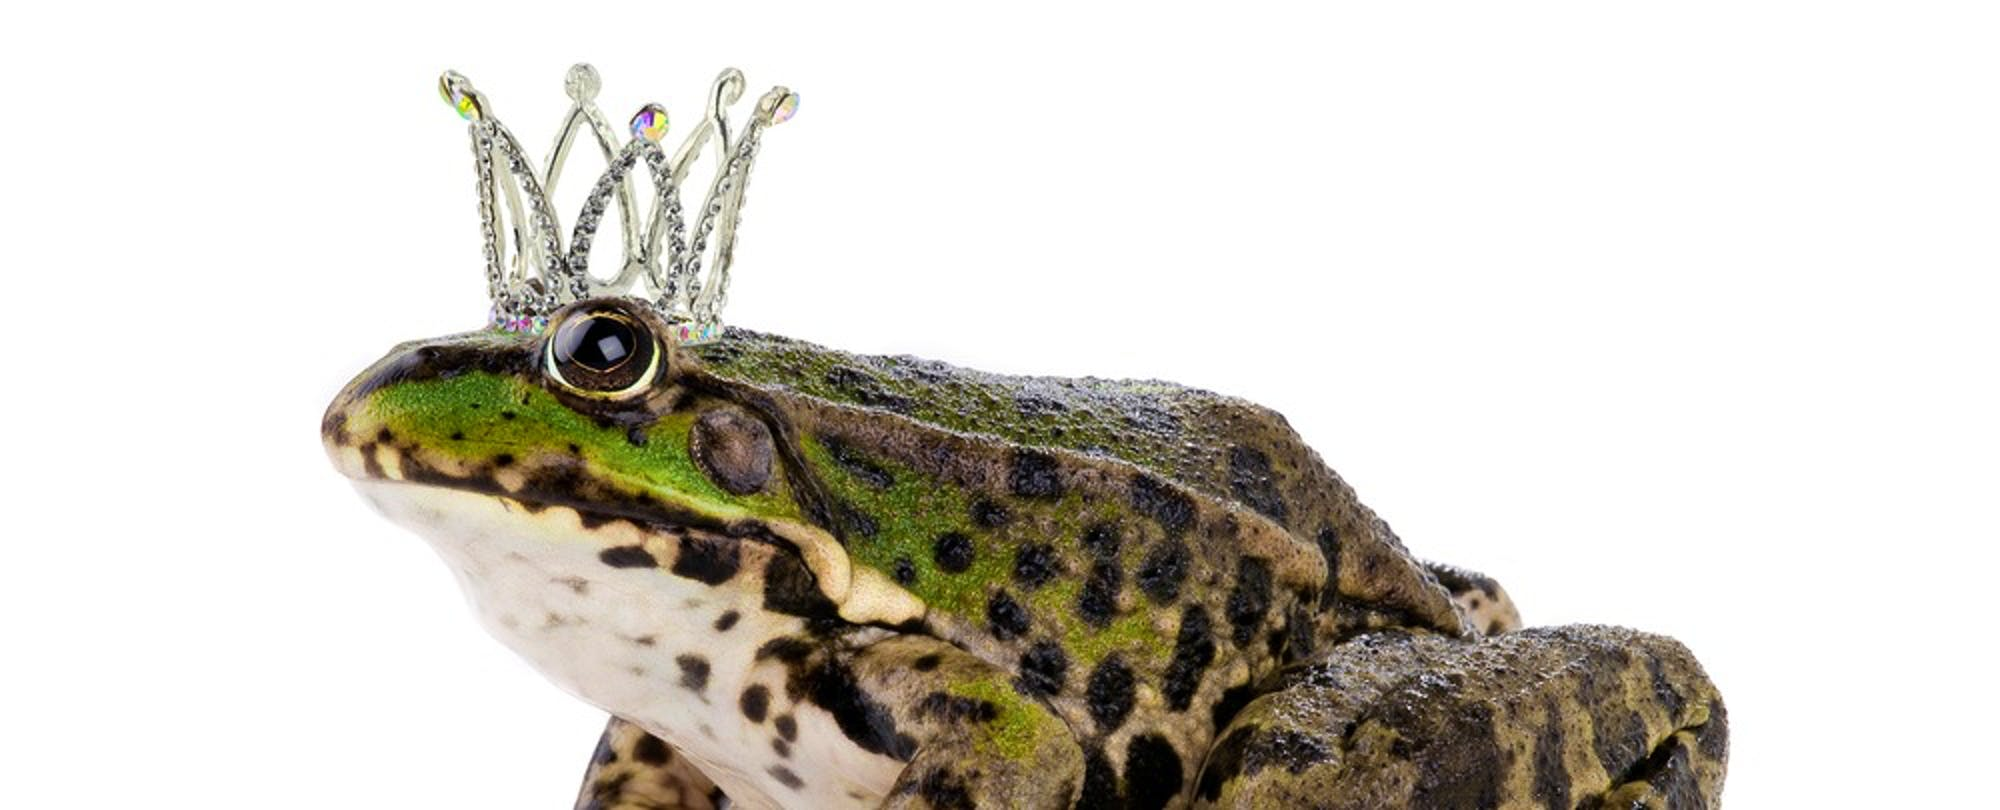 Kissing Frogs: How to Find the Right Courseware for Digital Learning